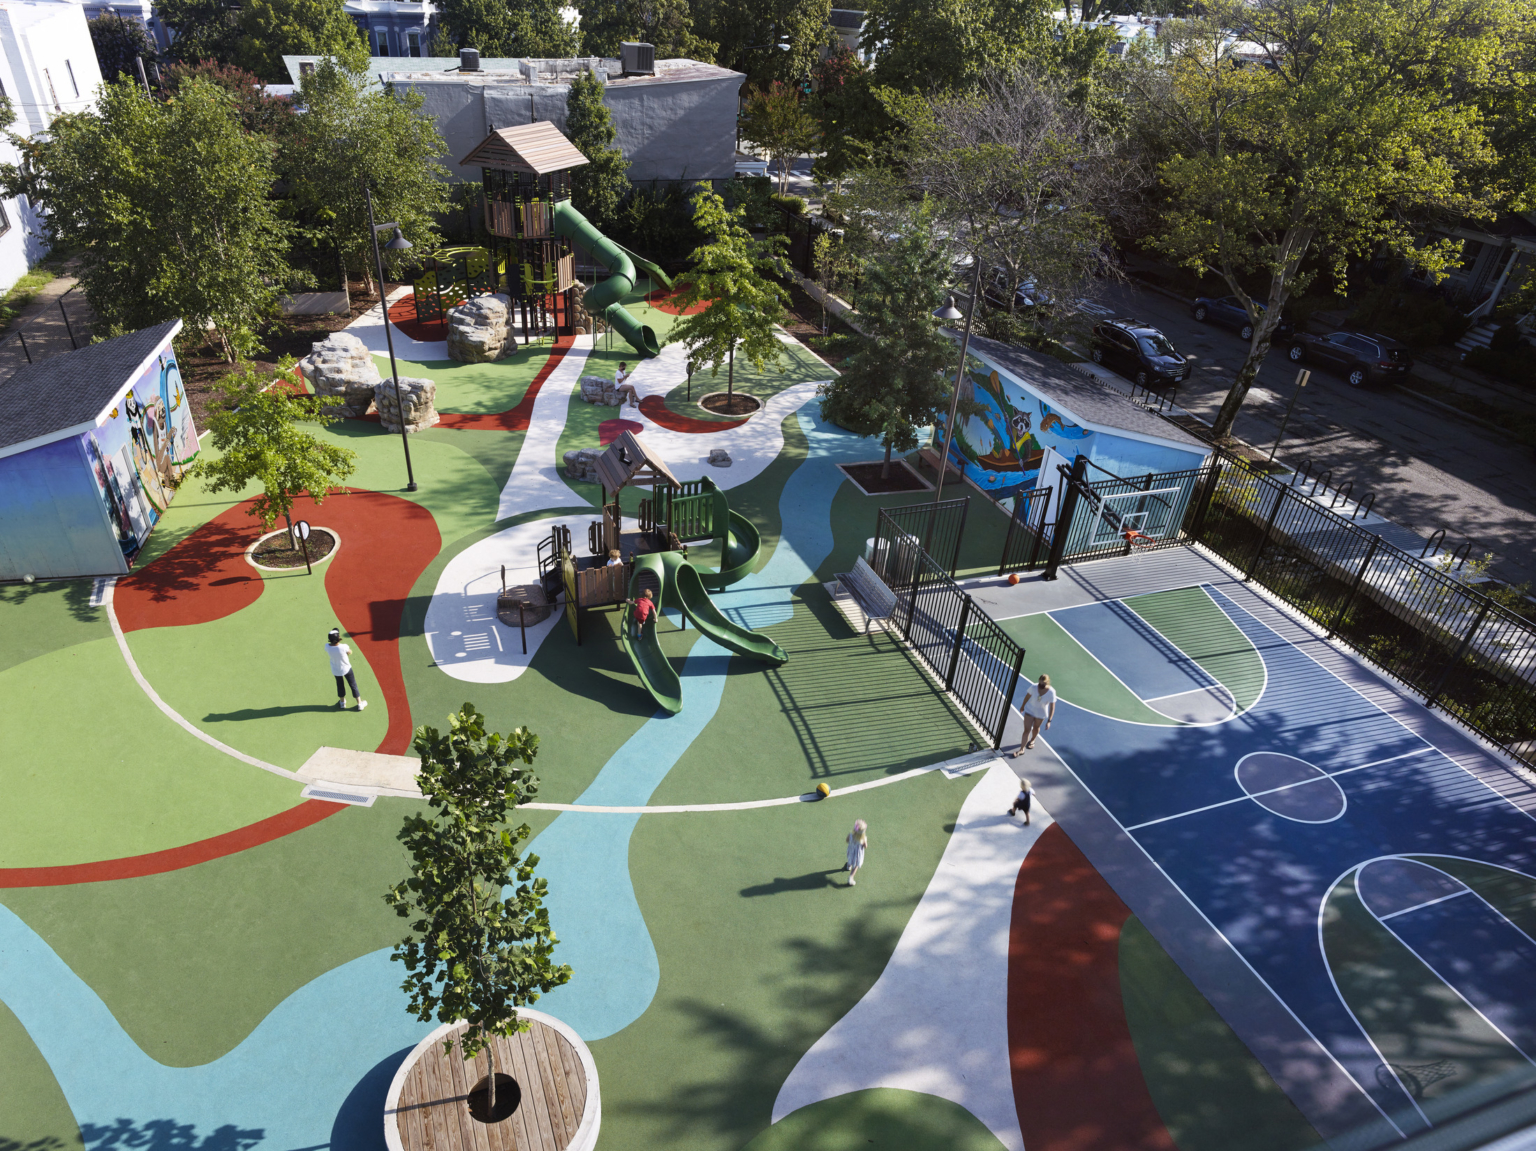 Aerial view of playground and outdoor areas at Maury Elementary School.